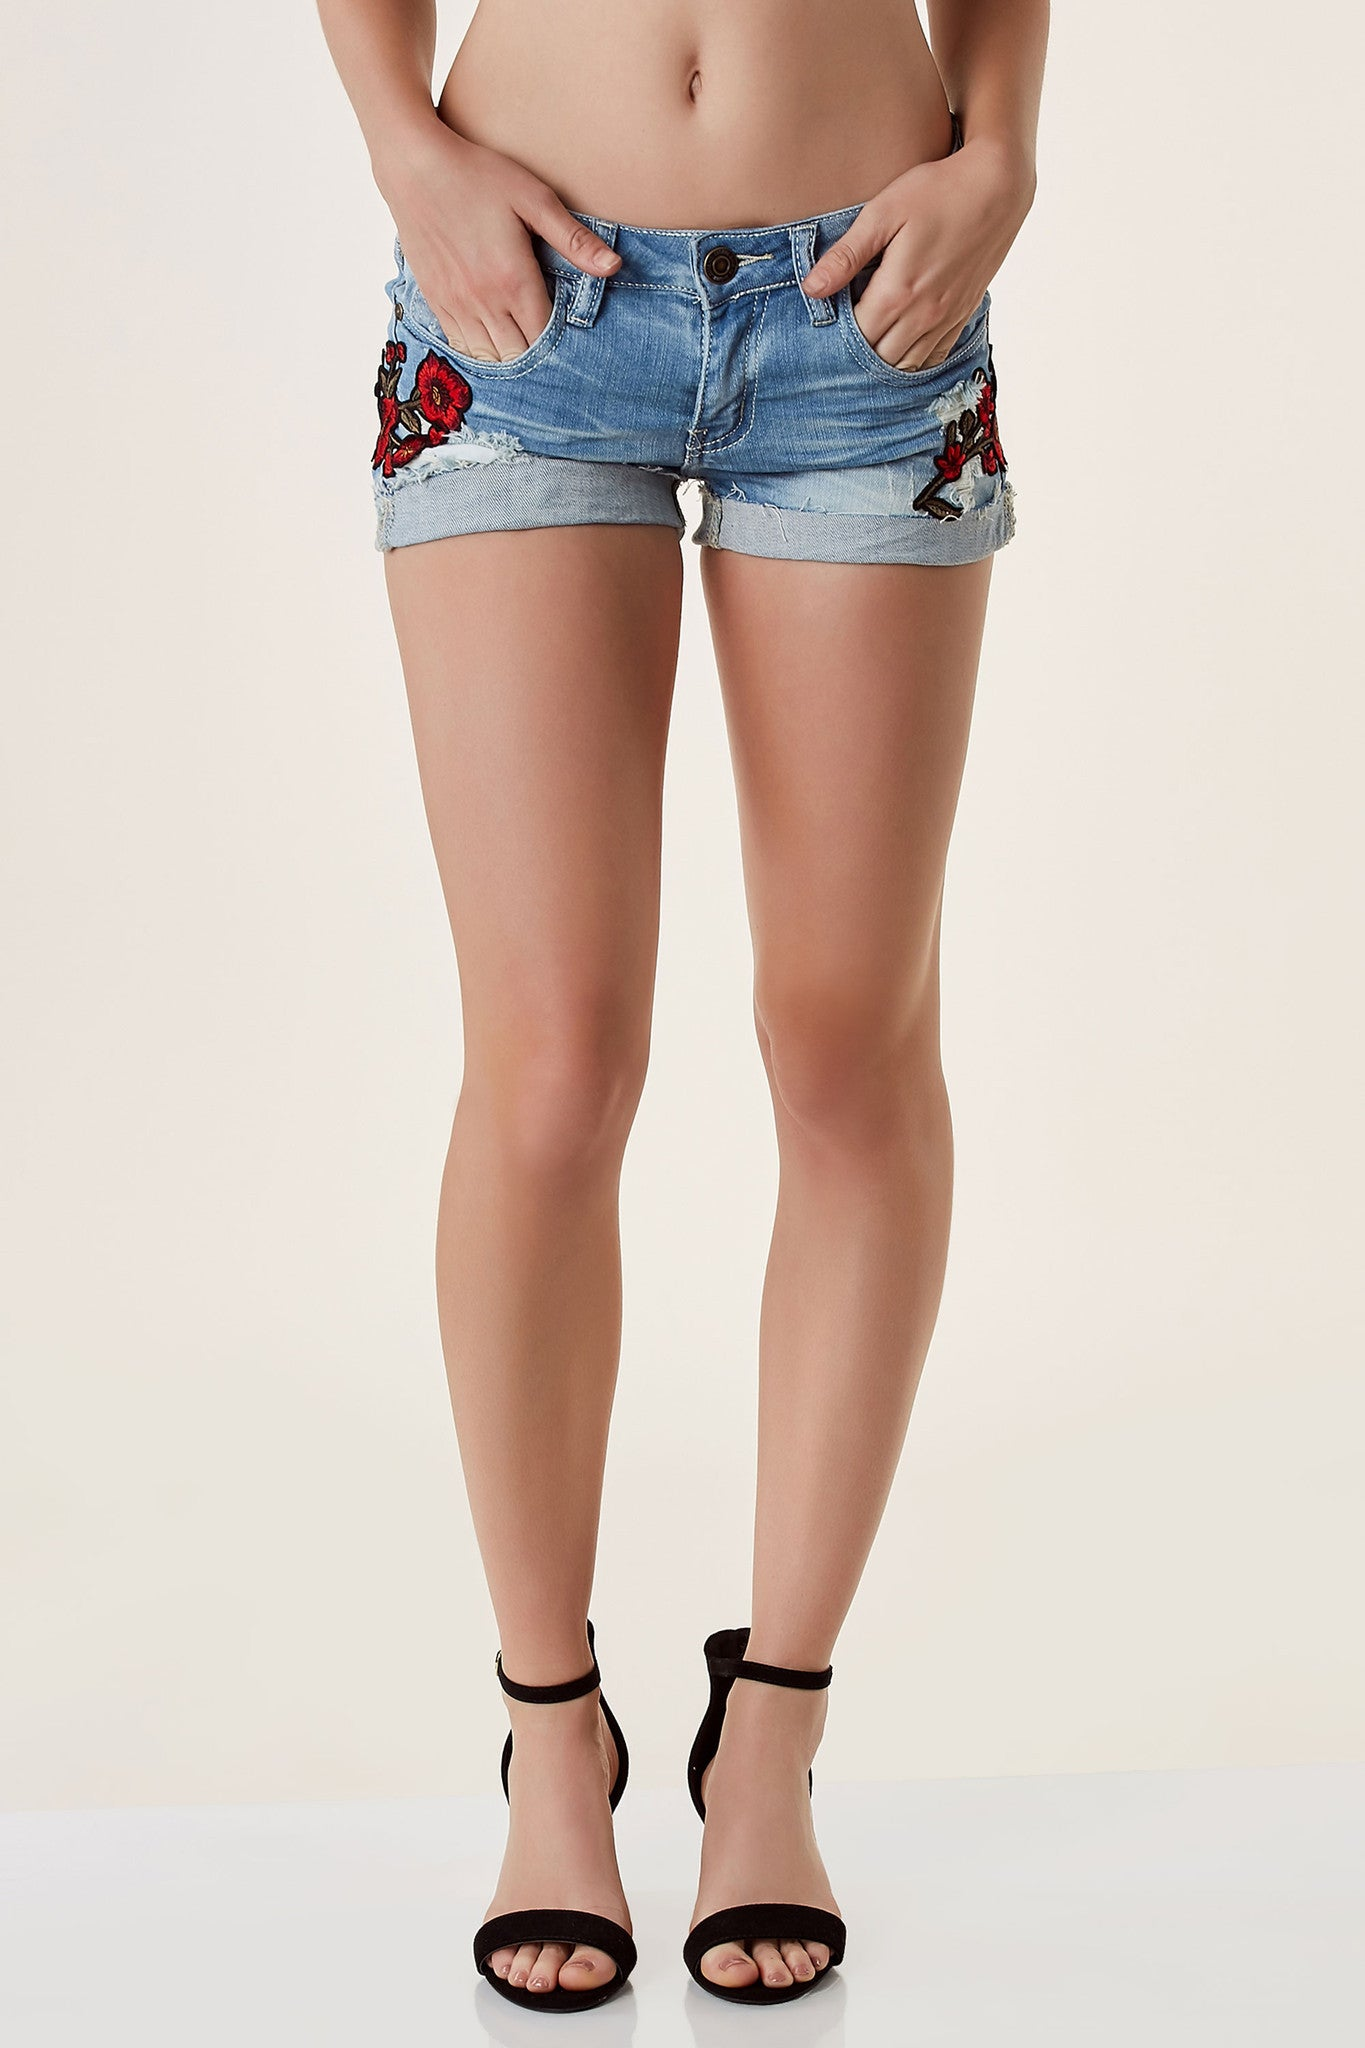 Comfortable stretchy pair of low rise shorts with faded detailing and distressing throughout. Colorful floral patches on each side with cuffed hem finish.